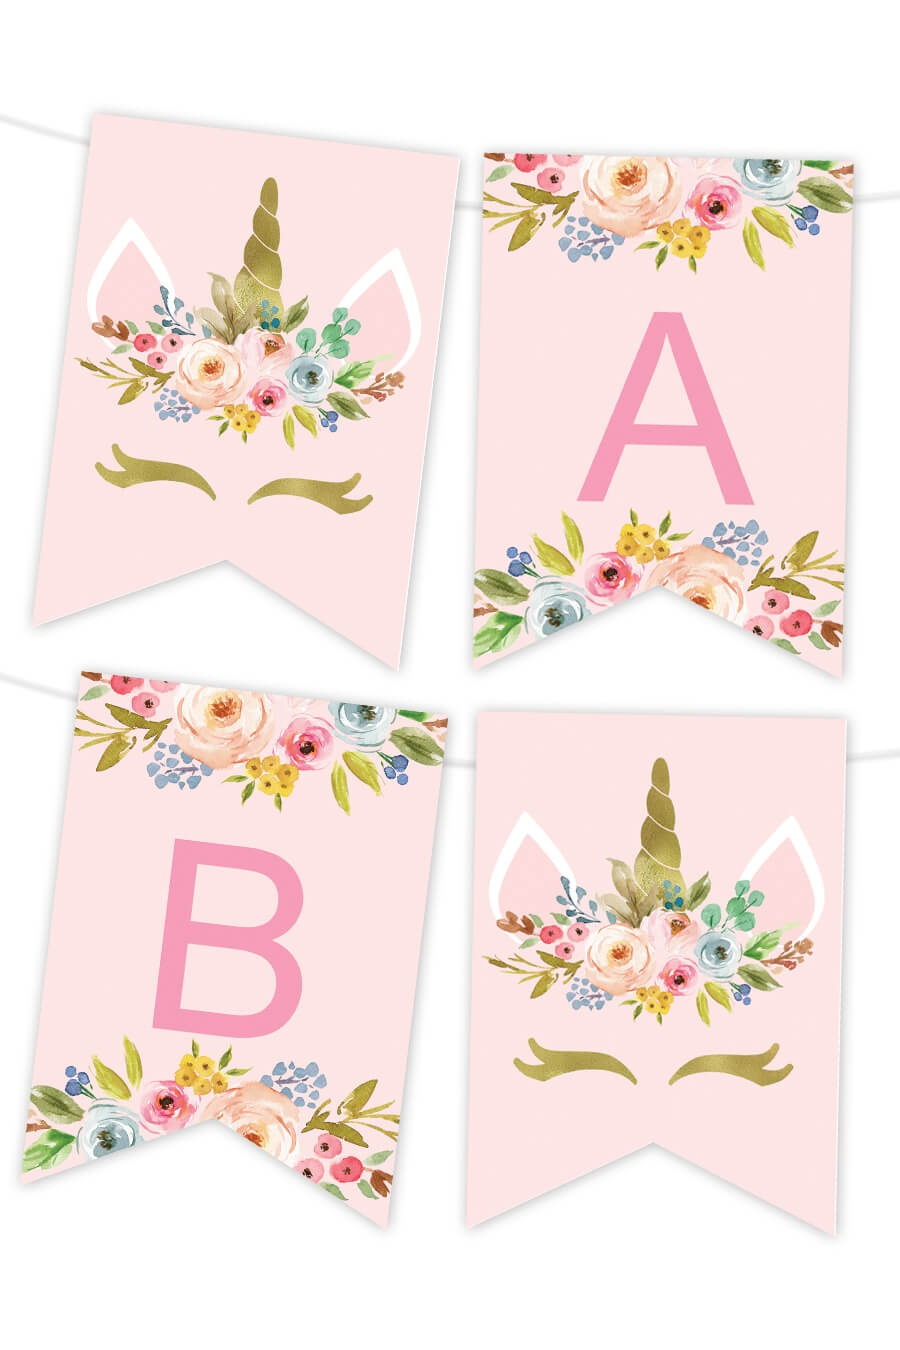 Printable Banners - Make Your Own Banners With Our Printable Templates - Free Printable Happy Birthday Banner